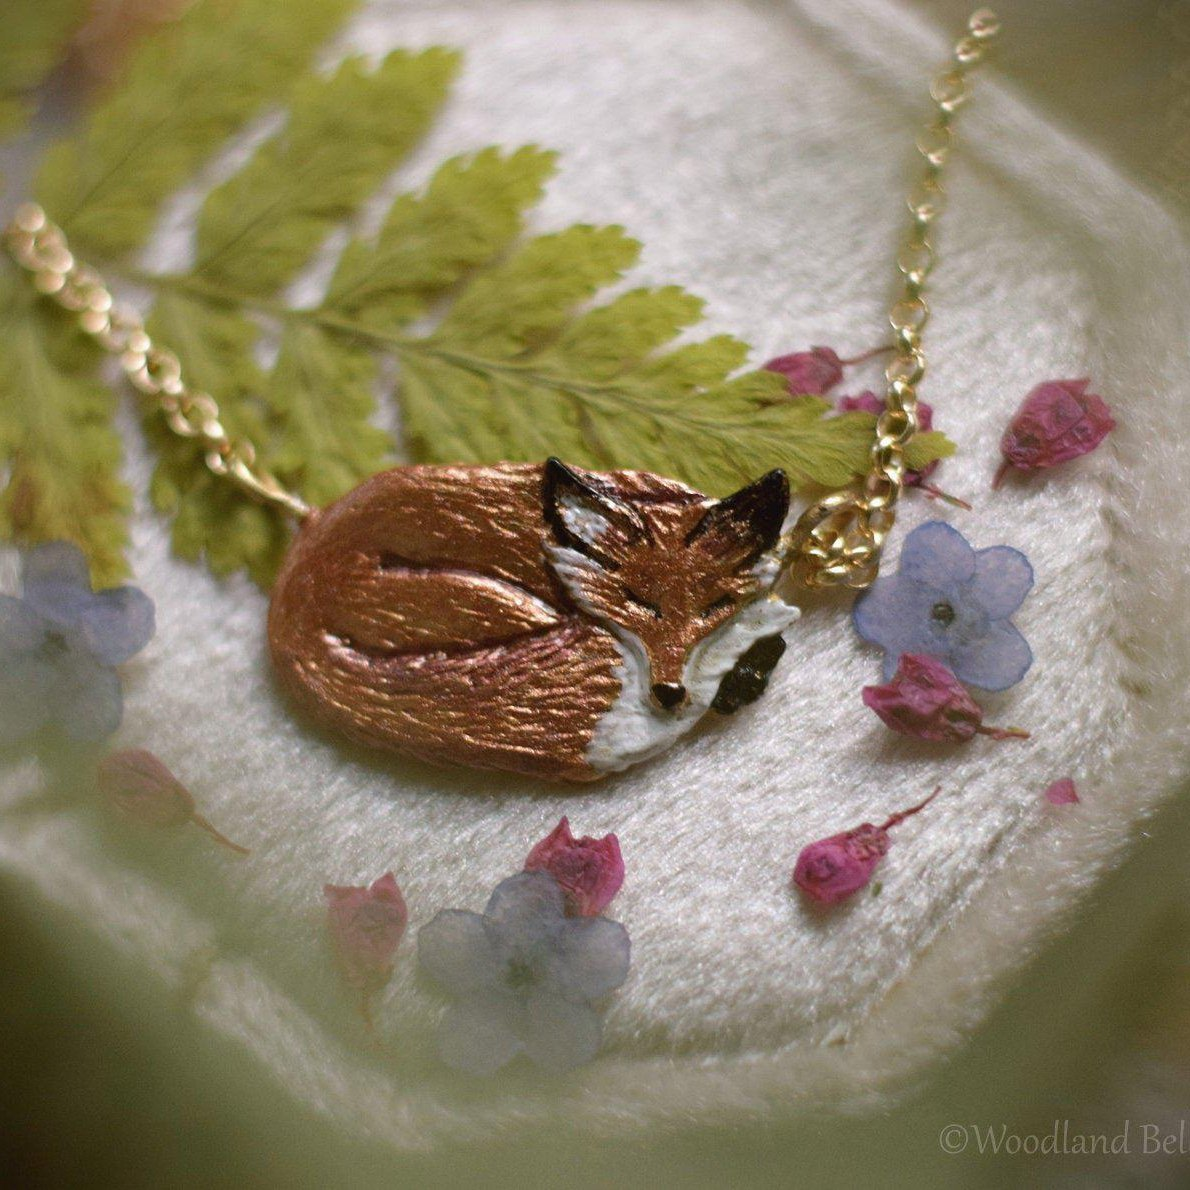 Sleeping Fox Necklace - Enameled Bronze Red Fox Pendant - Fox Lover Gift - Small, Dainty Animal Necklace - Cottagecore - by Woodland Belle